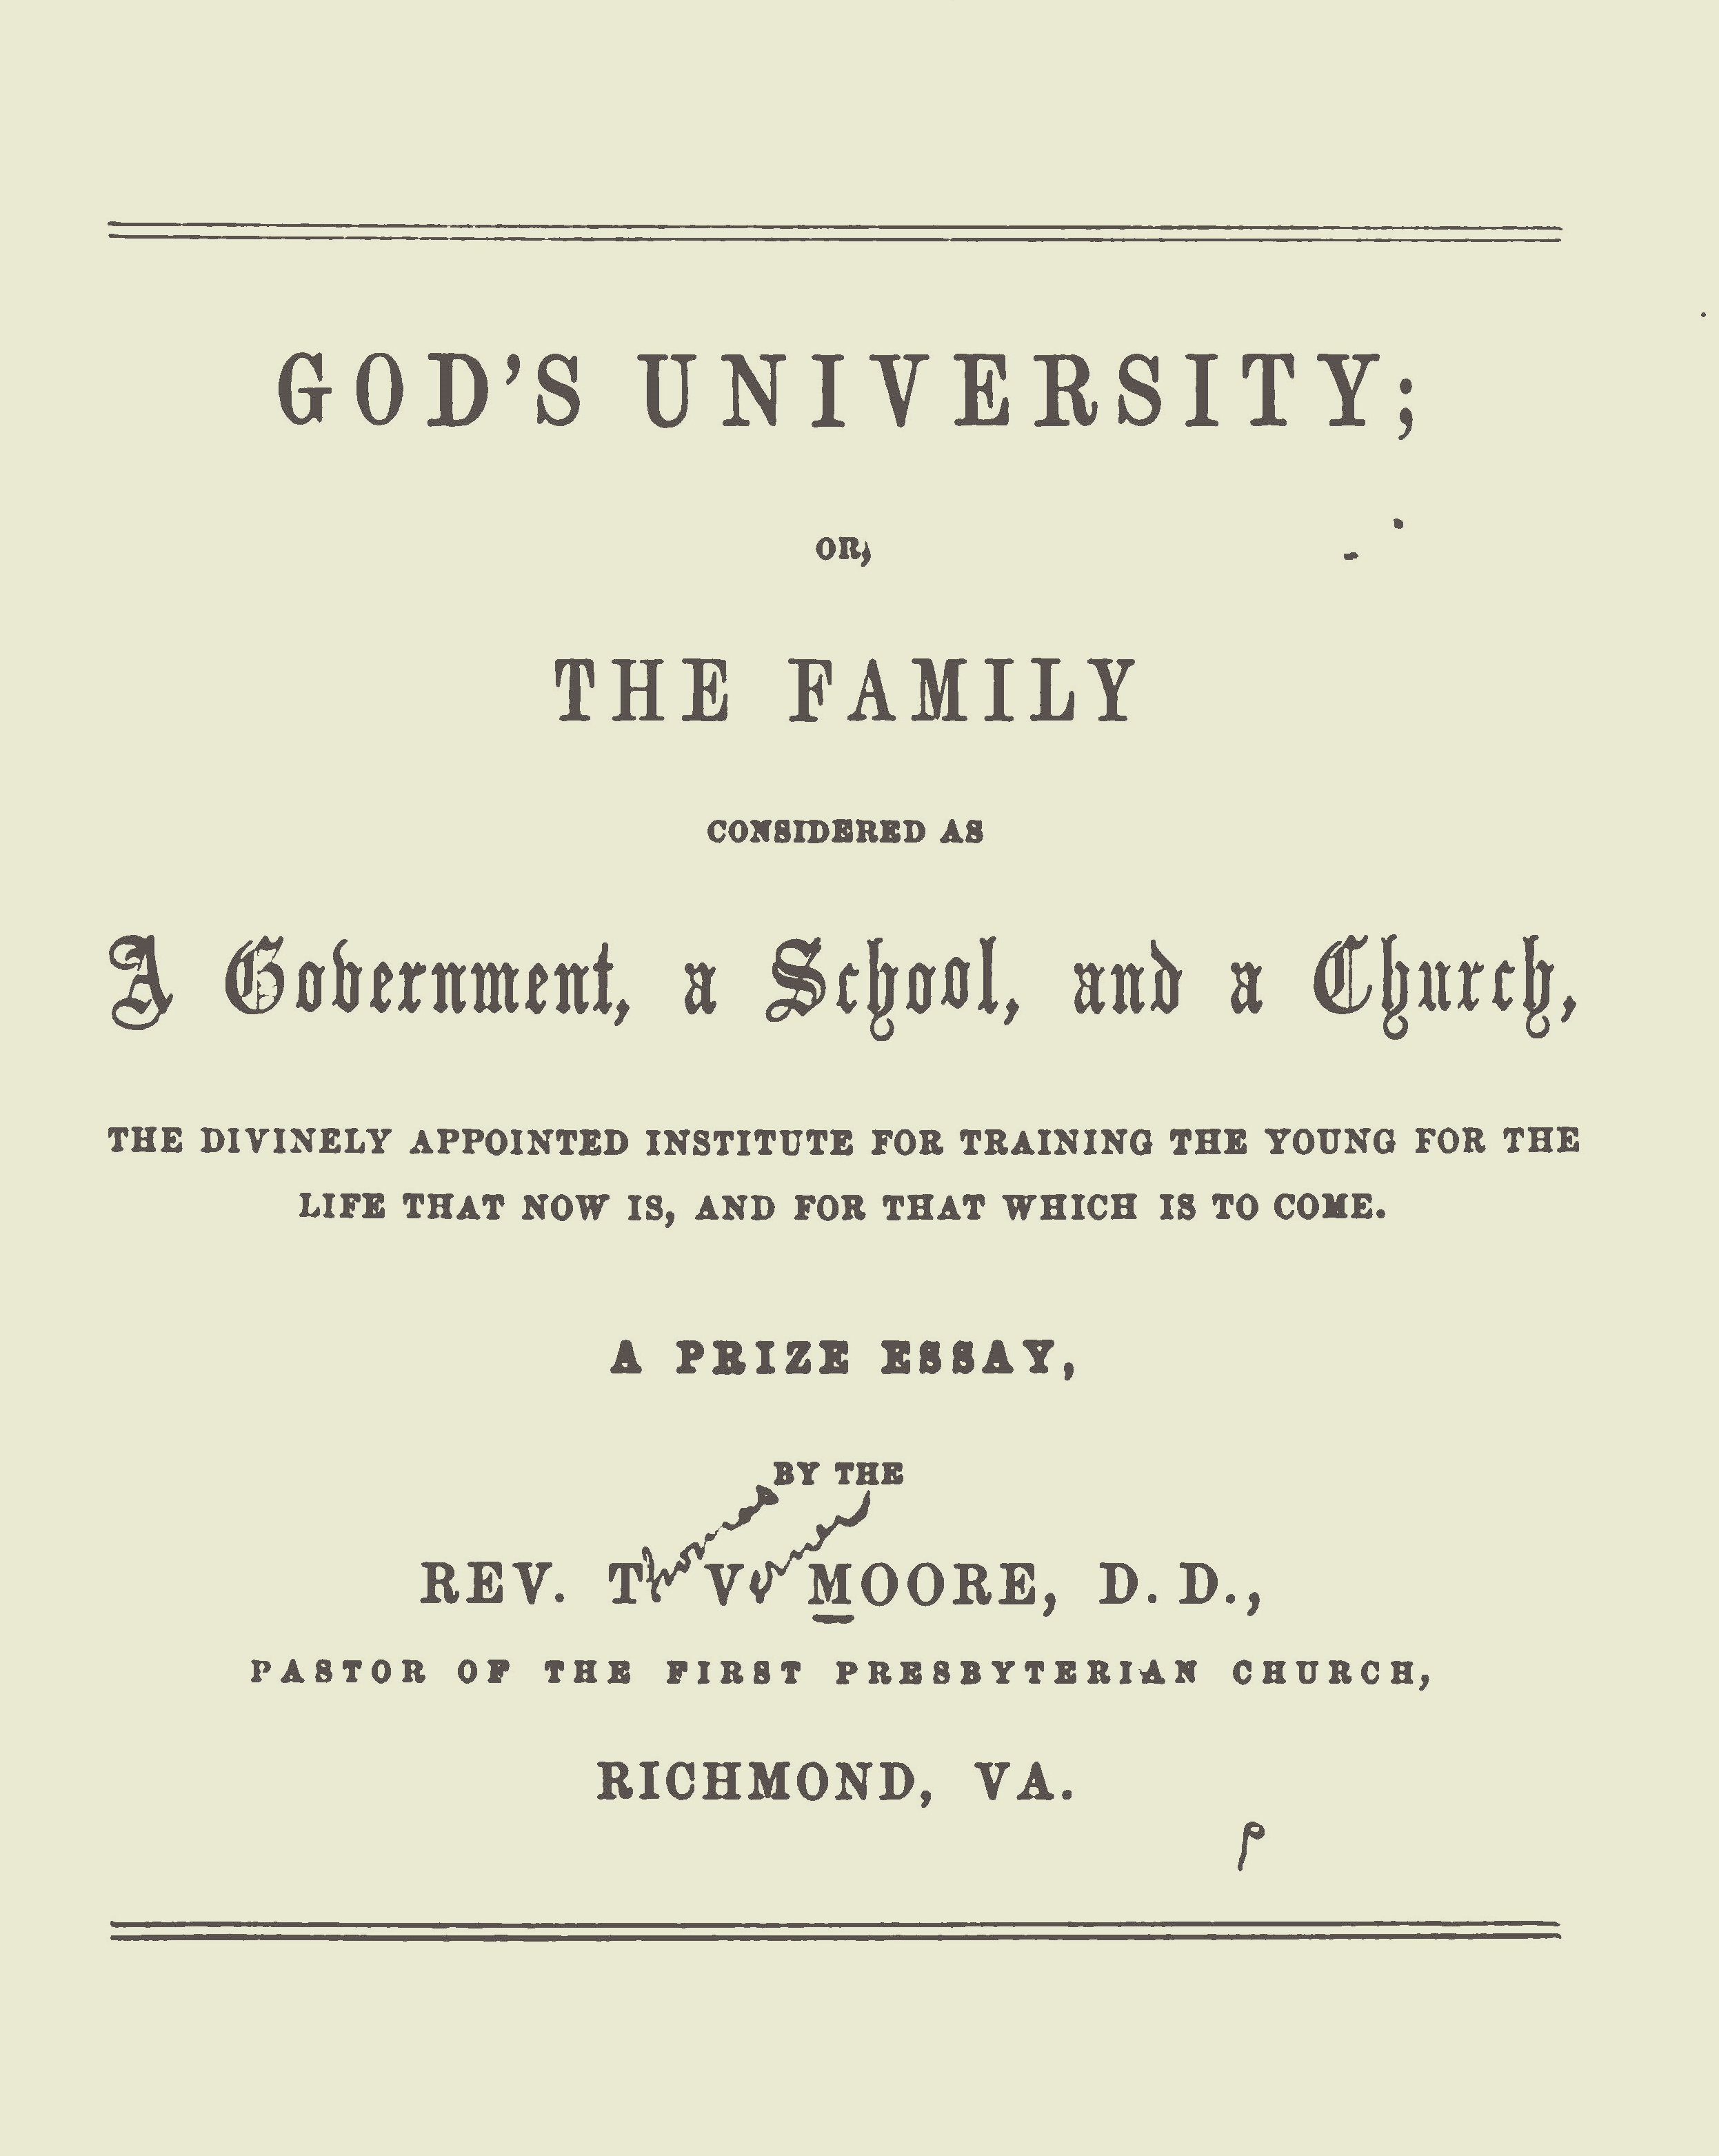 Moore's is the second of two prize essays contained in this PDF file.